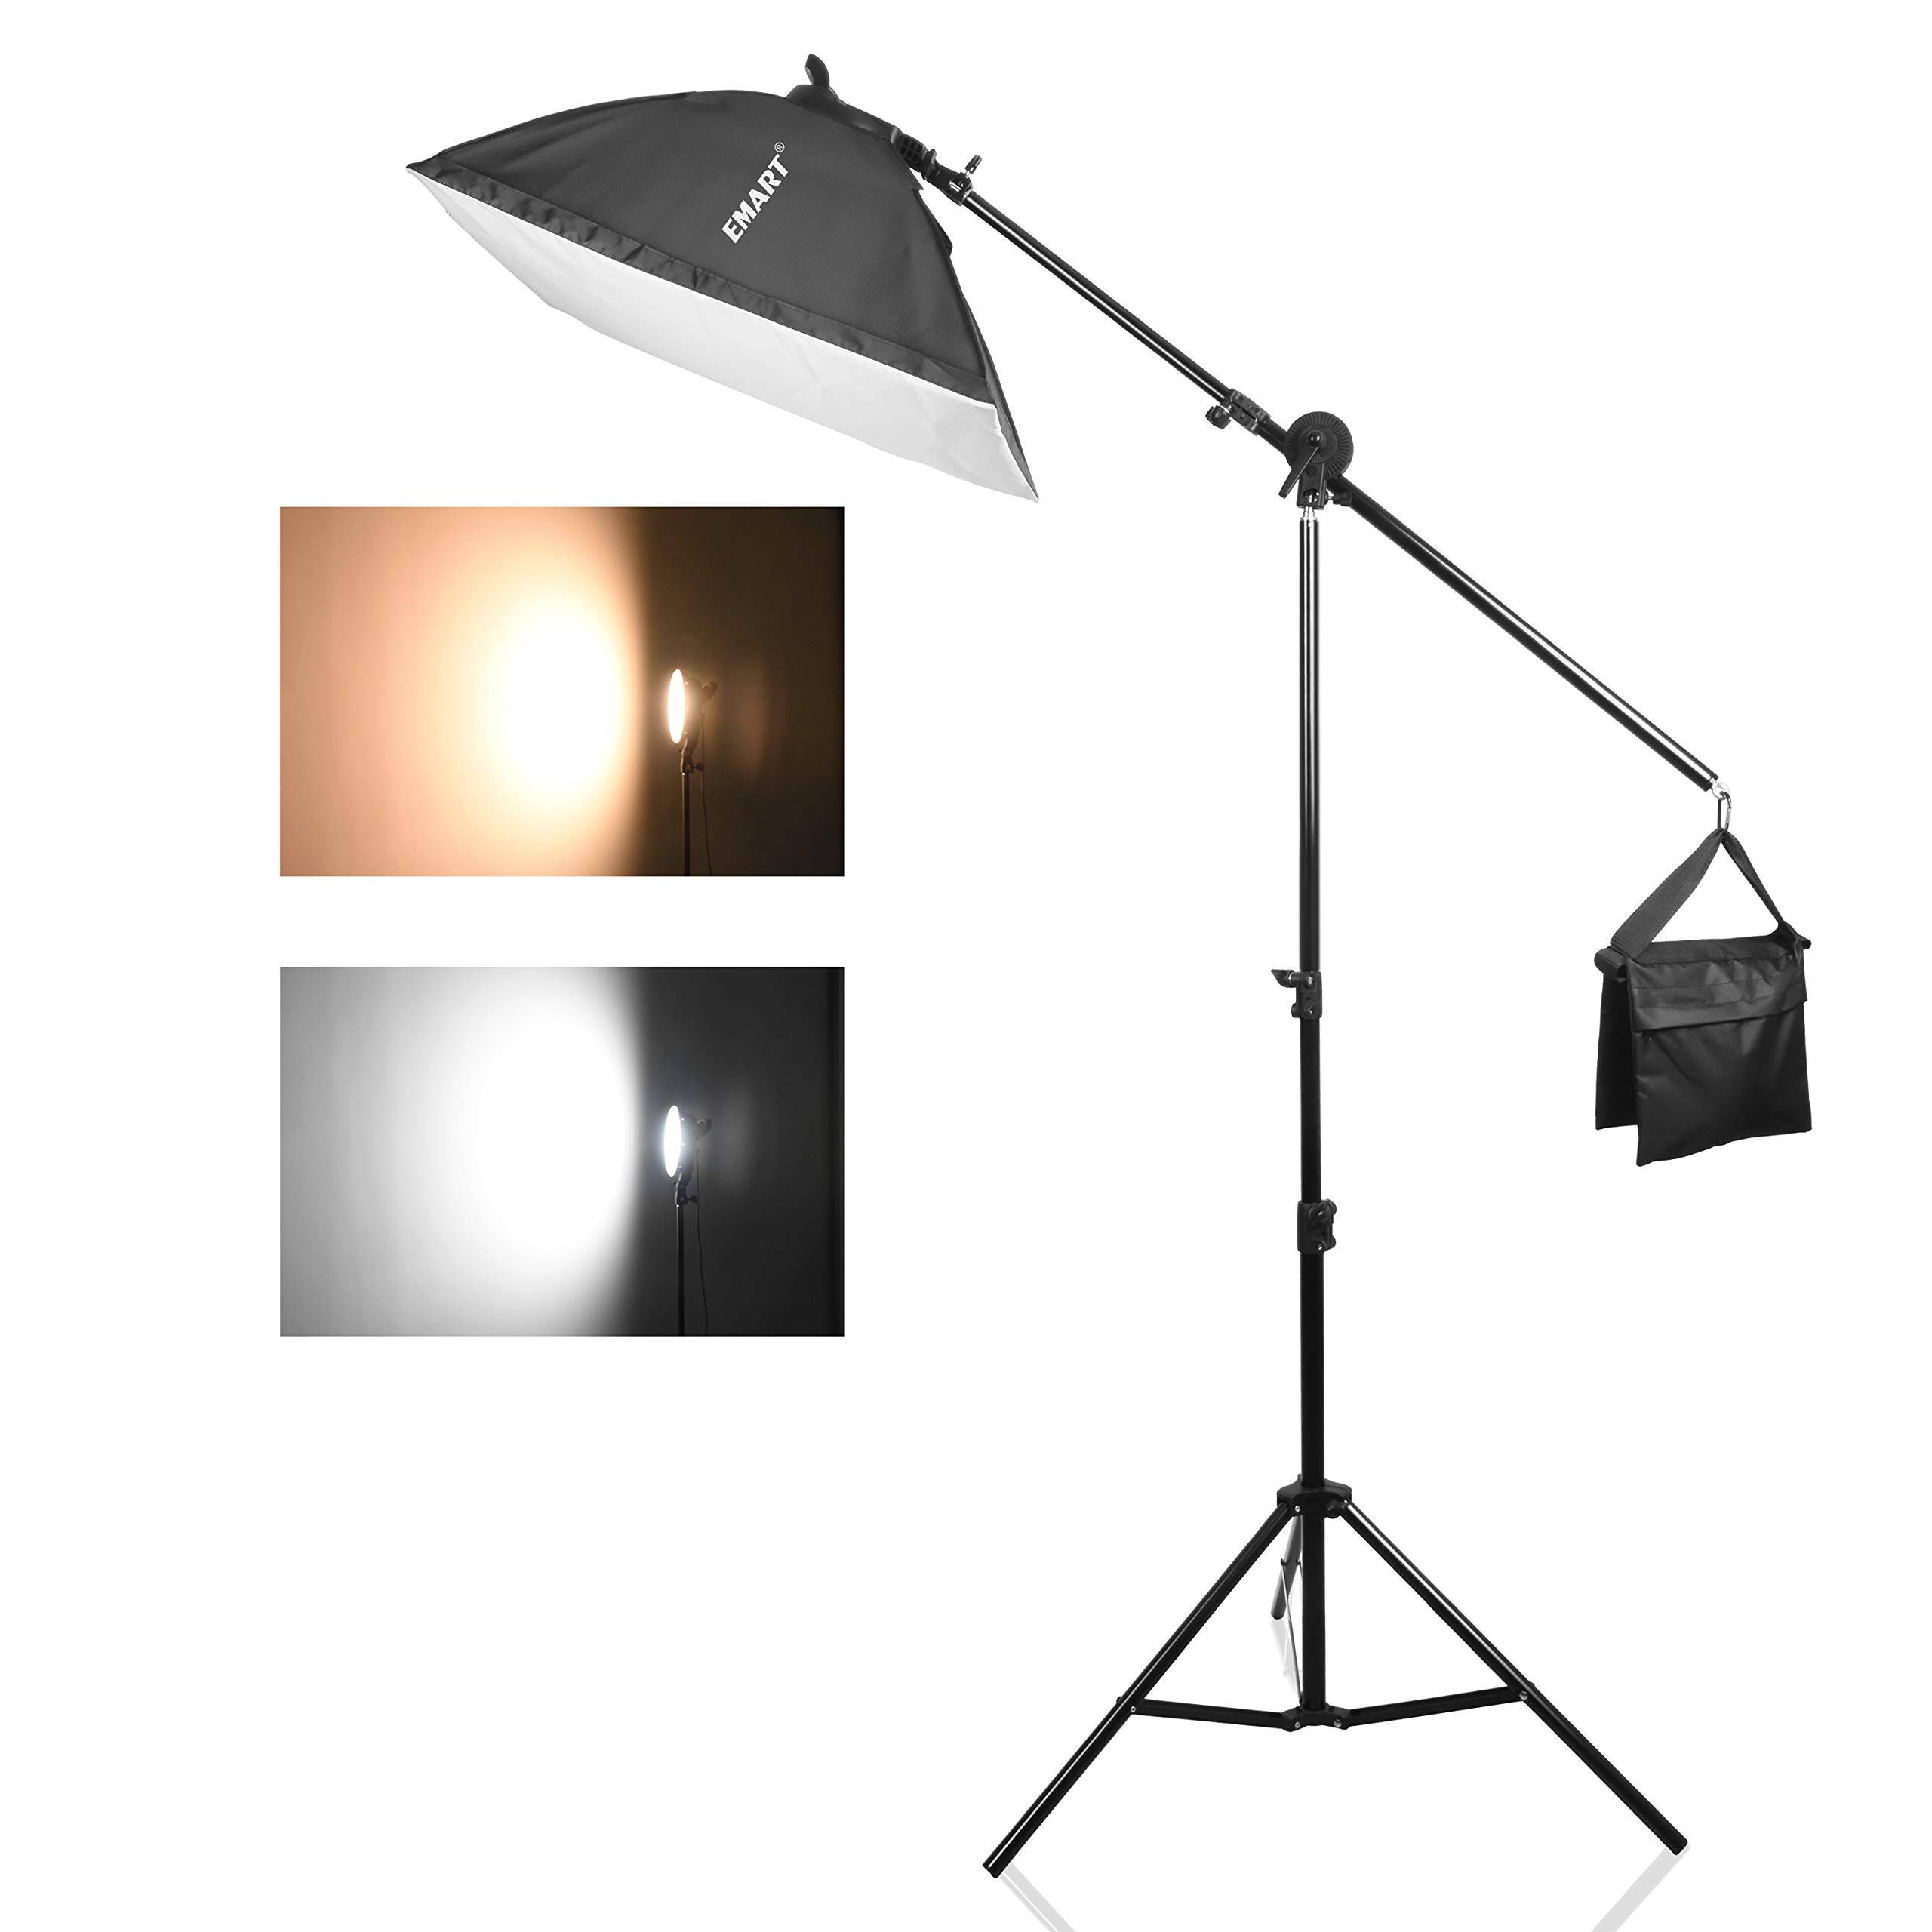 Emart 45W Dimmable LED with Double Color Temperature Continuous Lighting Studio Kit, Boom Arm Hairlight Softbox for Photography Lighting and Photo Vedio Shooting by EMART